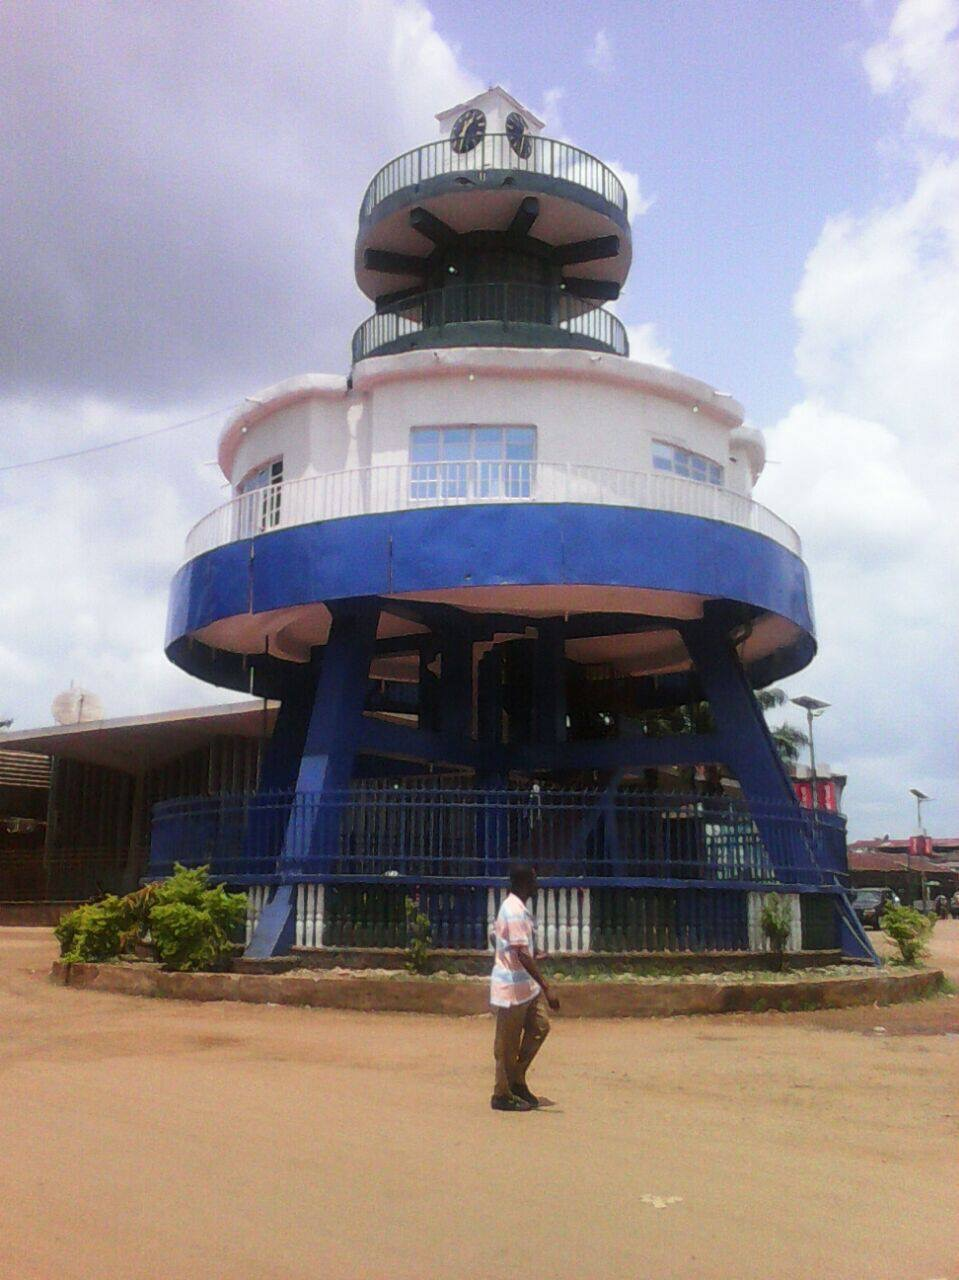 Roof turret on roundabout